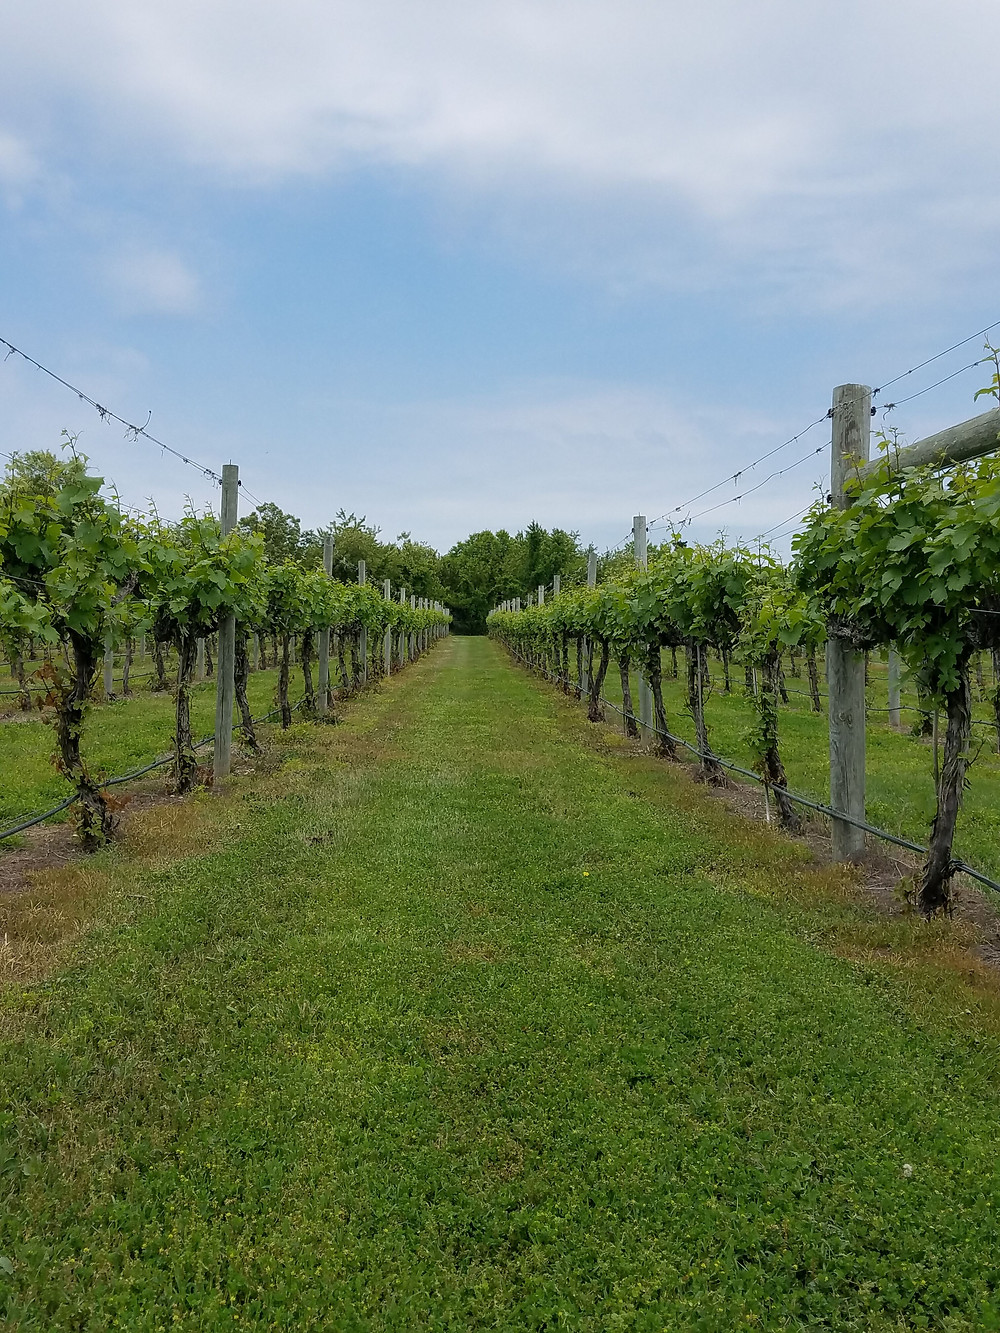 photo of vineyards in southern New Jersey